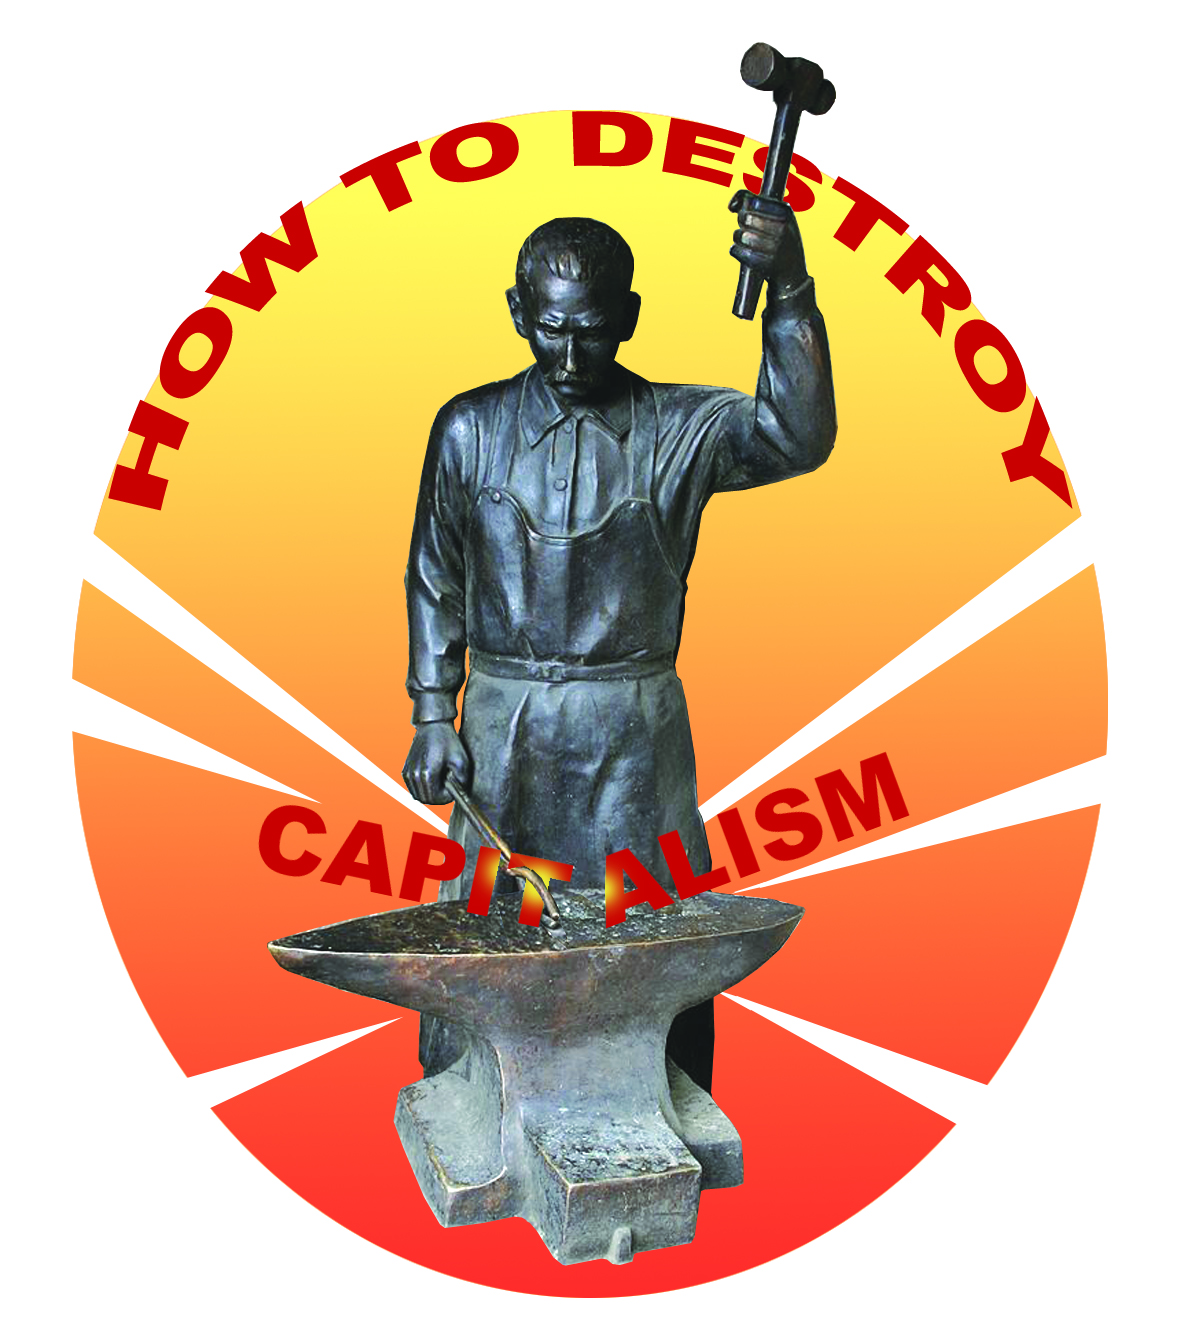 Socialism or your money back how to destroy capitalism blueprint in 2016 the pressure group corporate watch published a book capitalismwhat it is and how can we destroy it written by a dyed in the wool anarchist malvernweather Choice Image